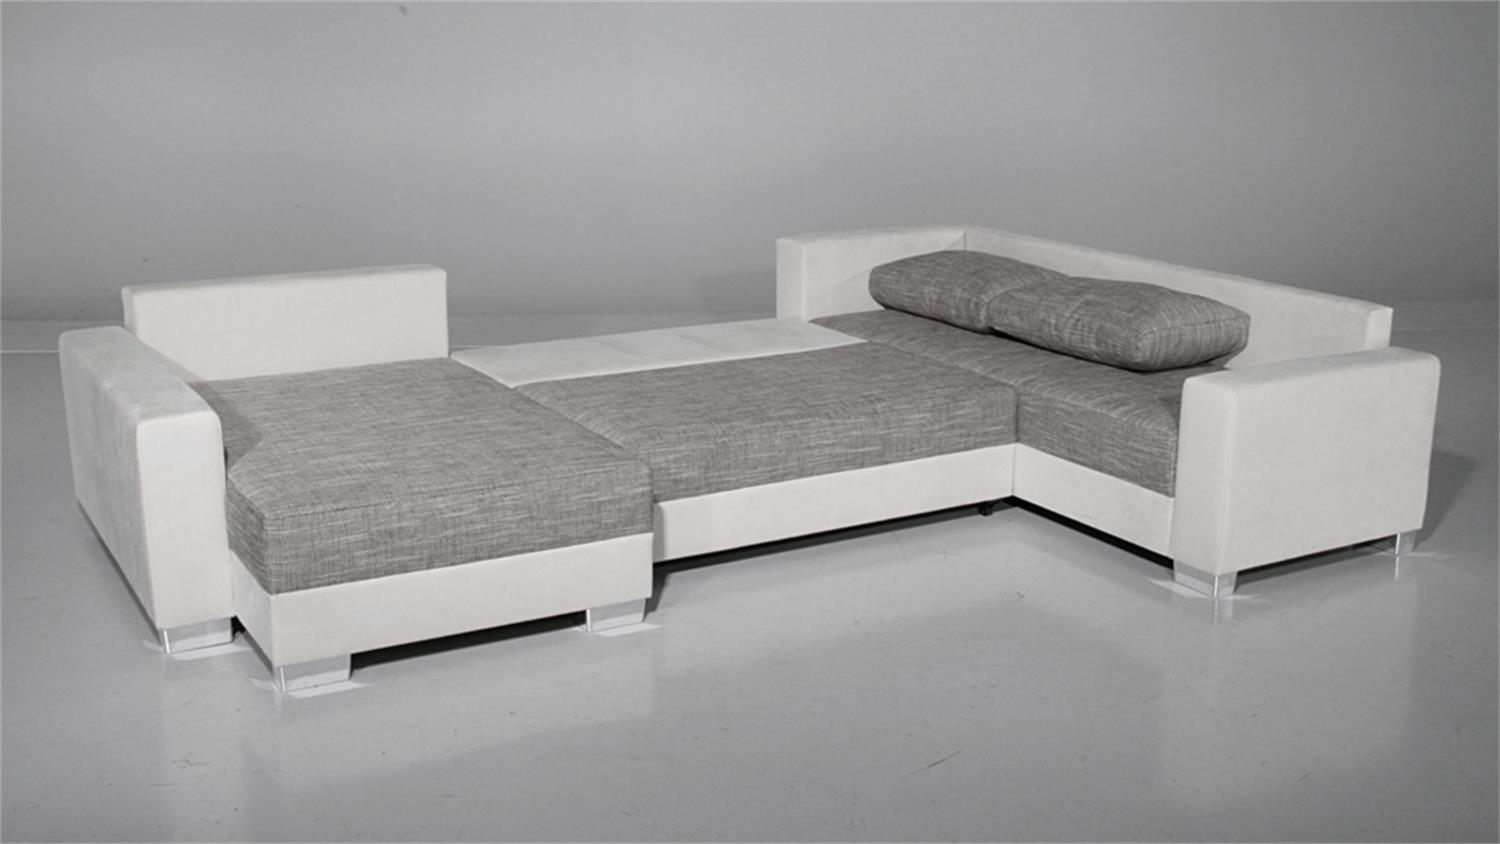 Sofa Mit Bettfunktion Mbelix Chesterfield Sitzer Mit Bettfunktion Sofa Couch Polster Garnitur